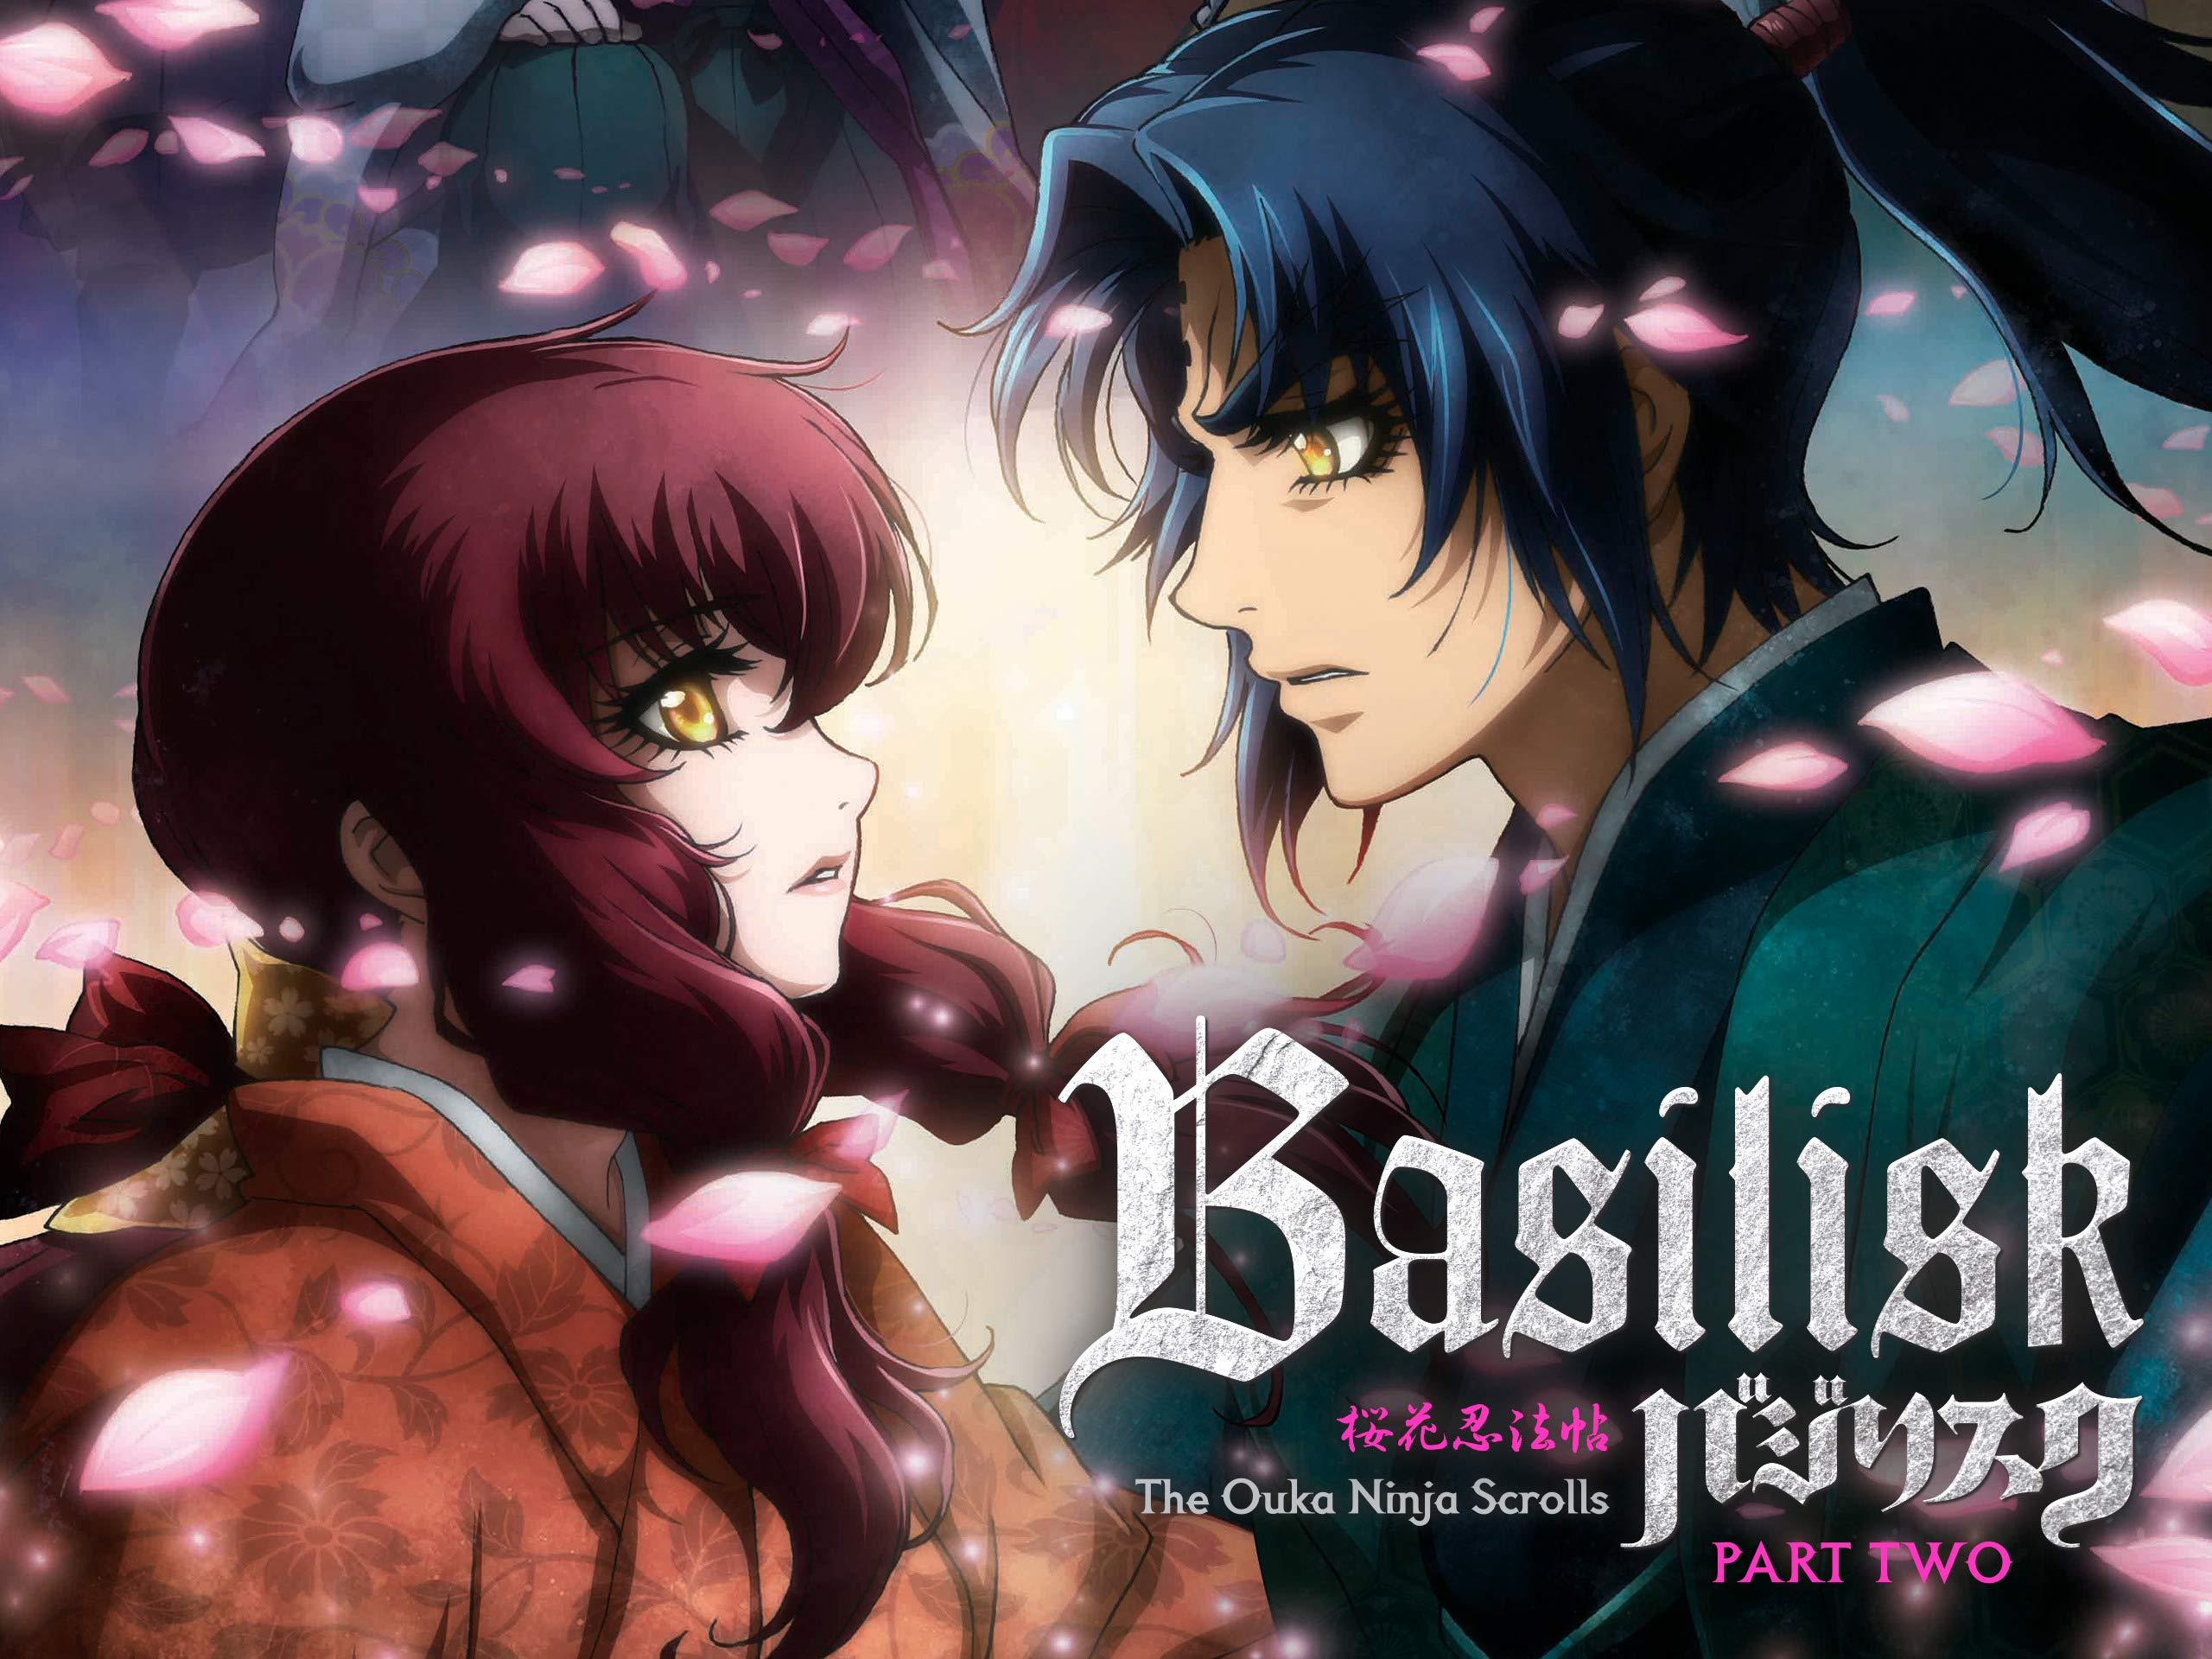 Watch Basilisk: The Ouka Ninja Scrolls, Pt. 2 | Prime Video